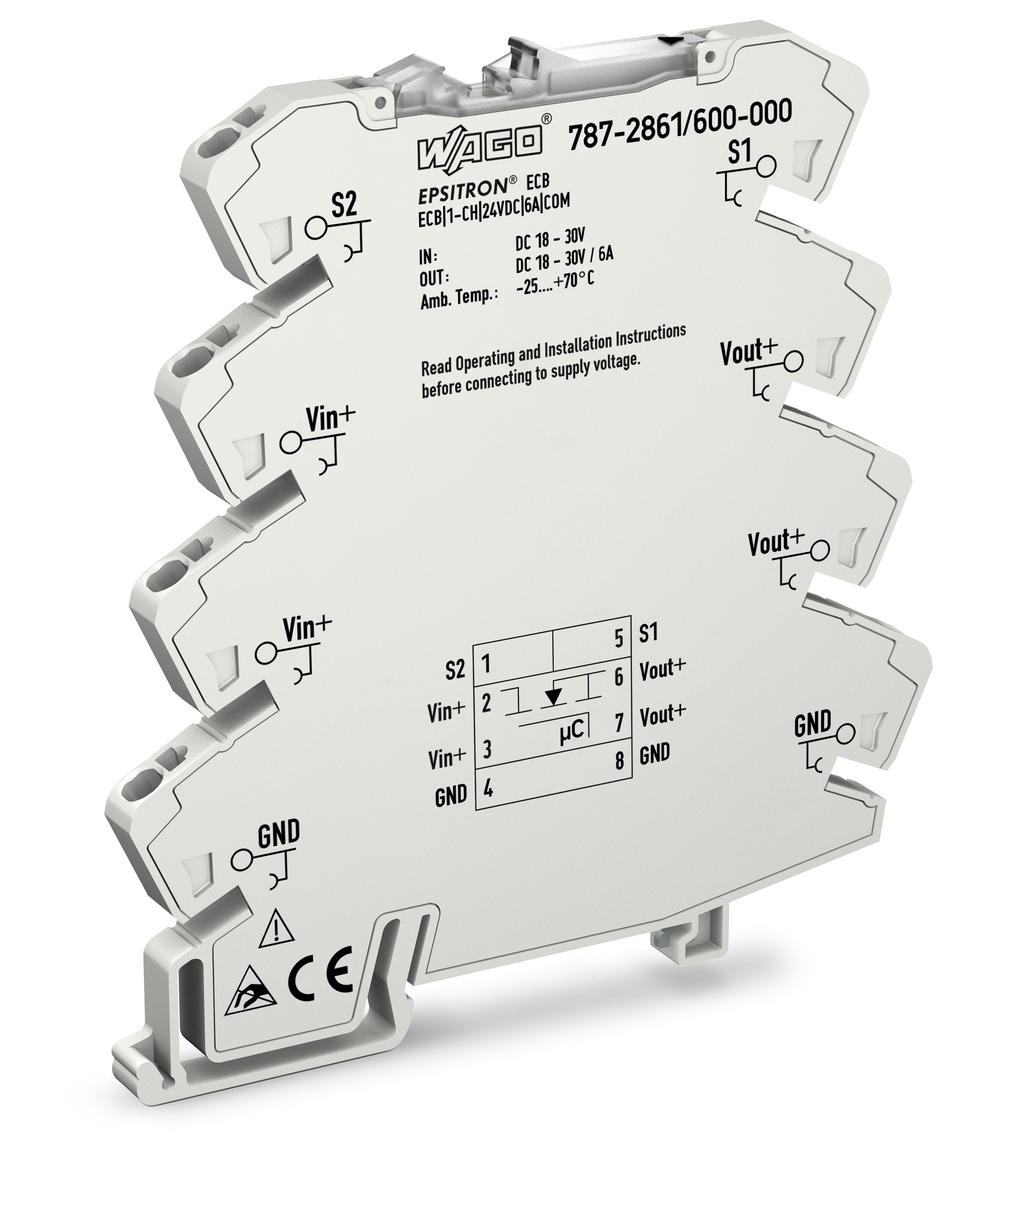 Electronic circuit breaker; EPSITRON®; 1-channel; 24 VDC; 6 A;  communication capability